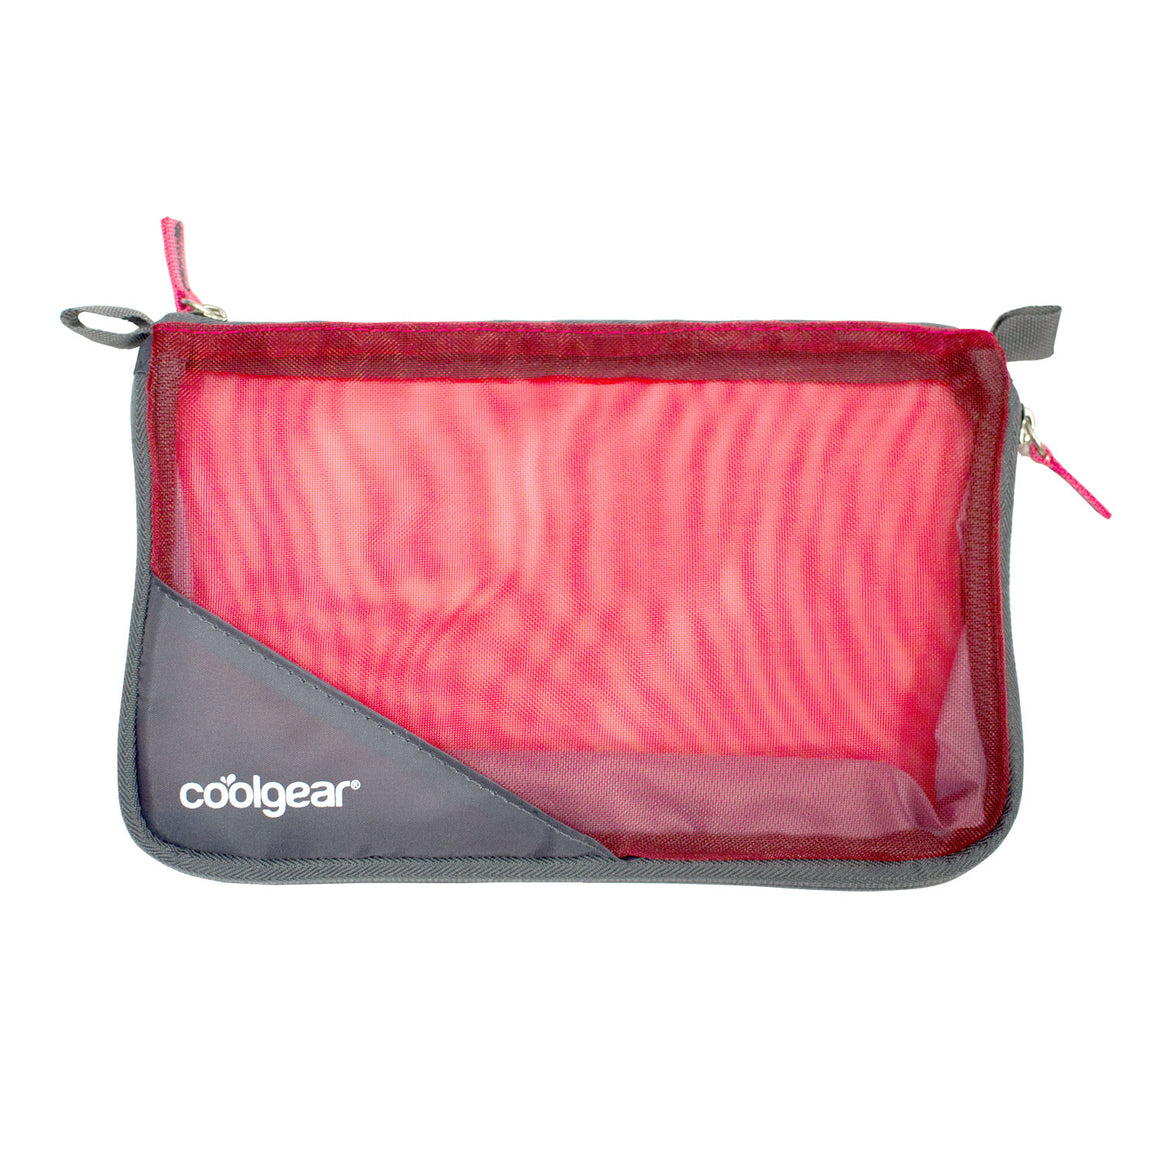 Coral Expandable Mesh Travel Bag at Cool Gear Travel Bags